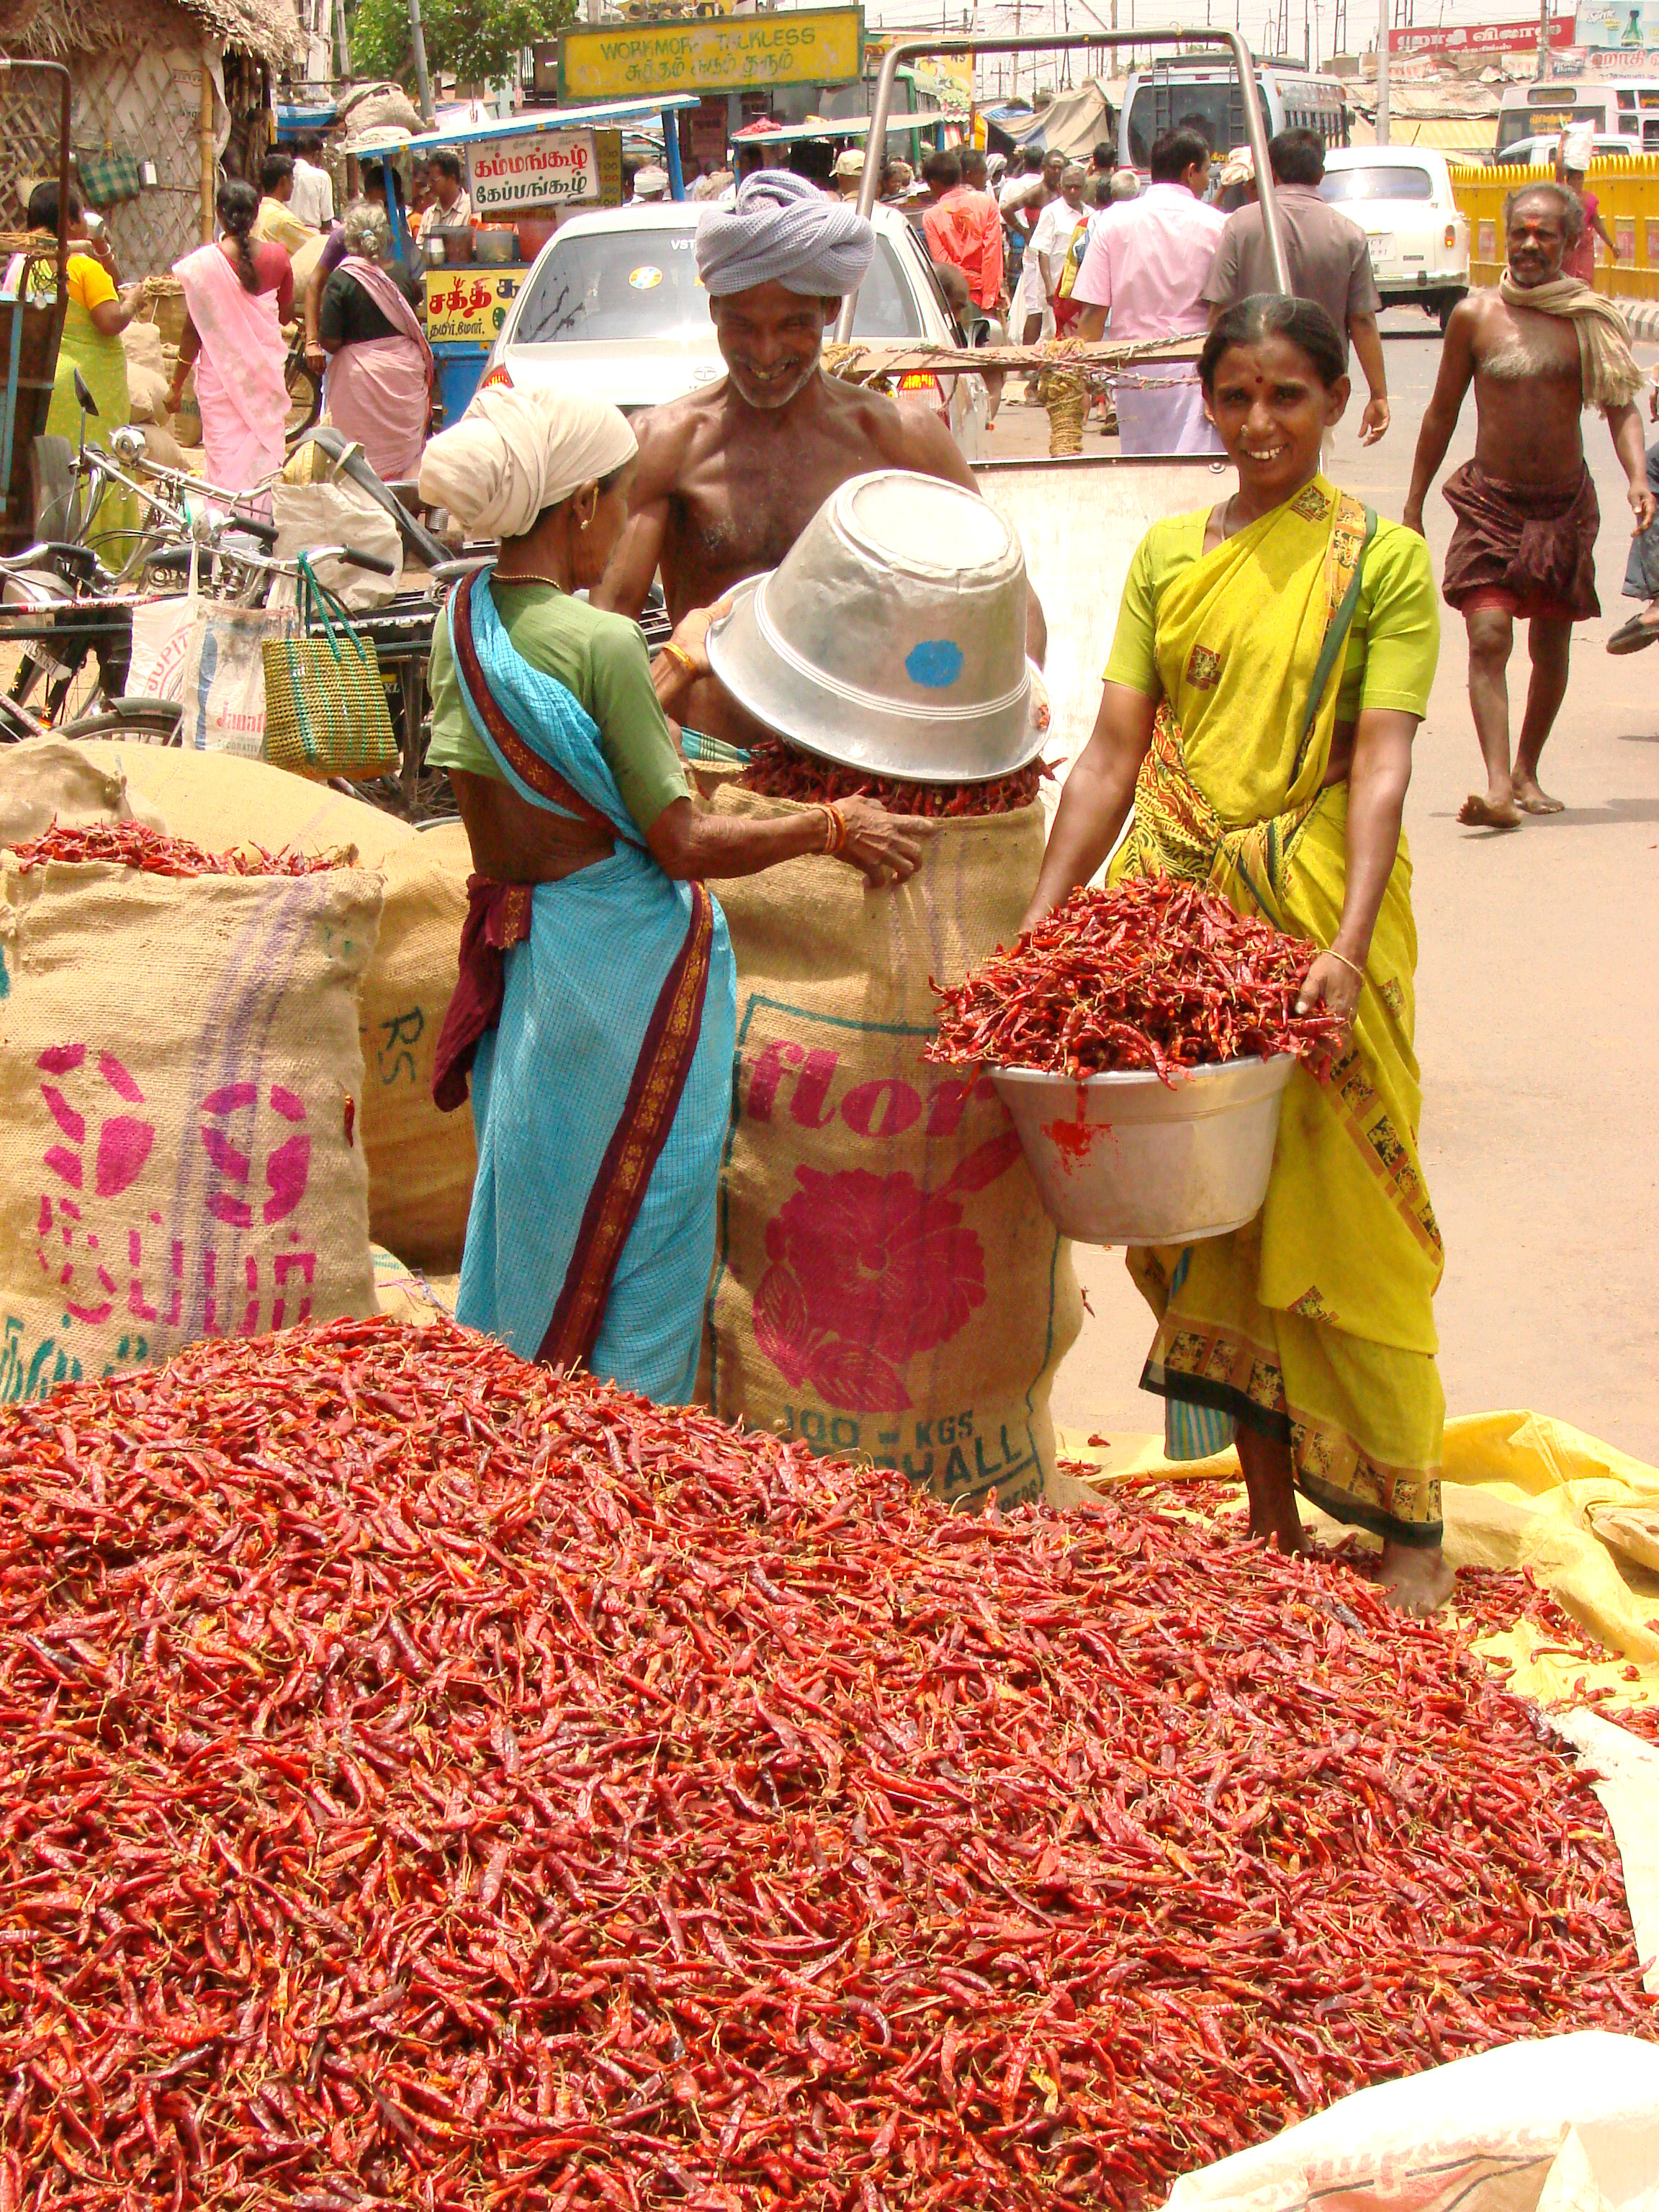 Tiruchirappalli India  city photos gallery : Chili Vendors Tiruchirappalli India Wikimedia Commons